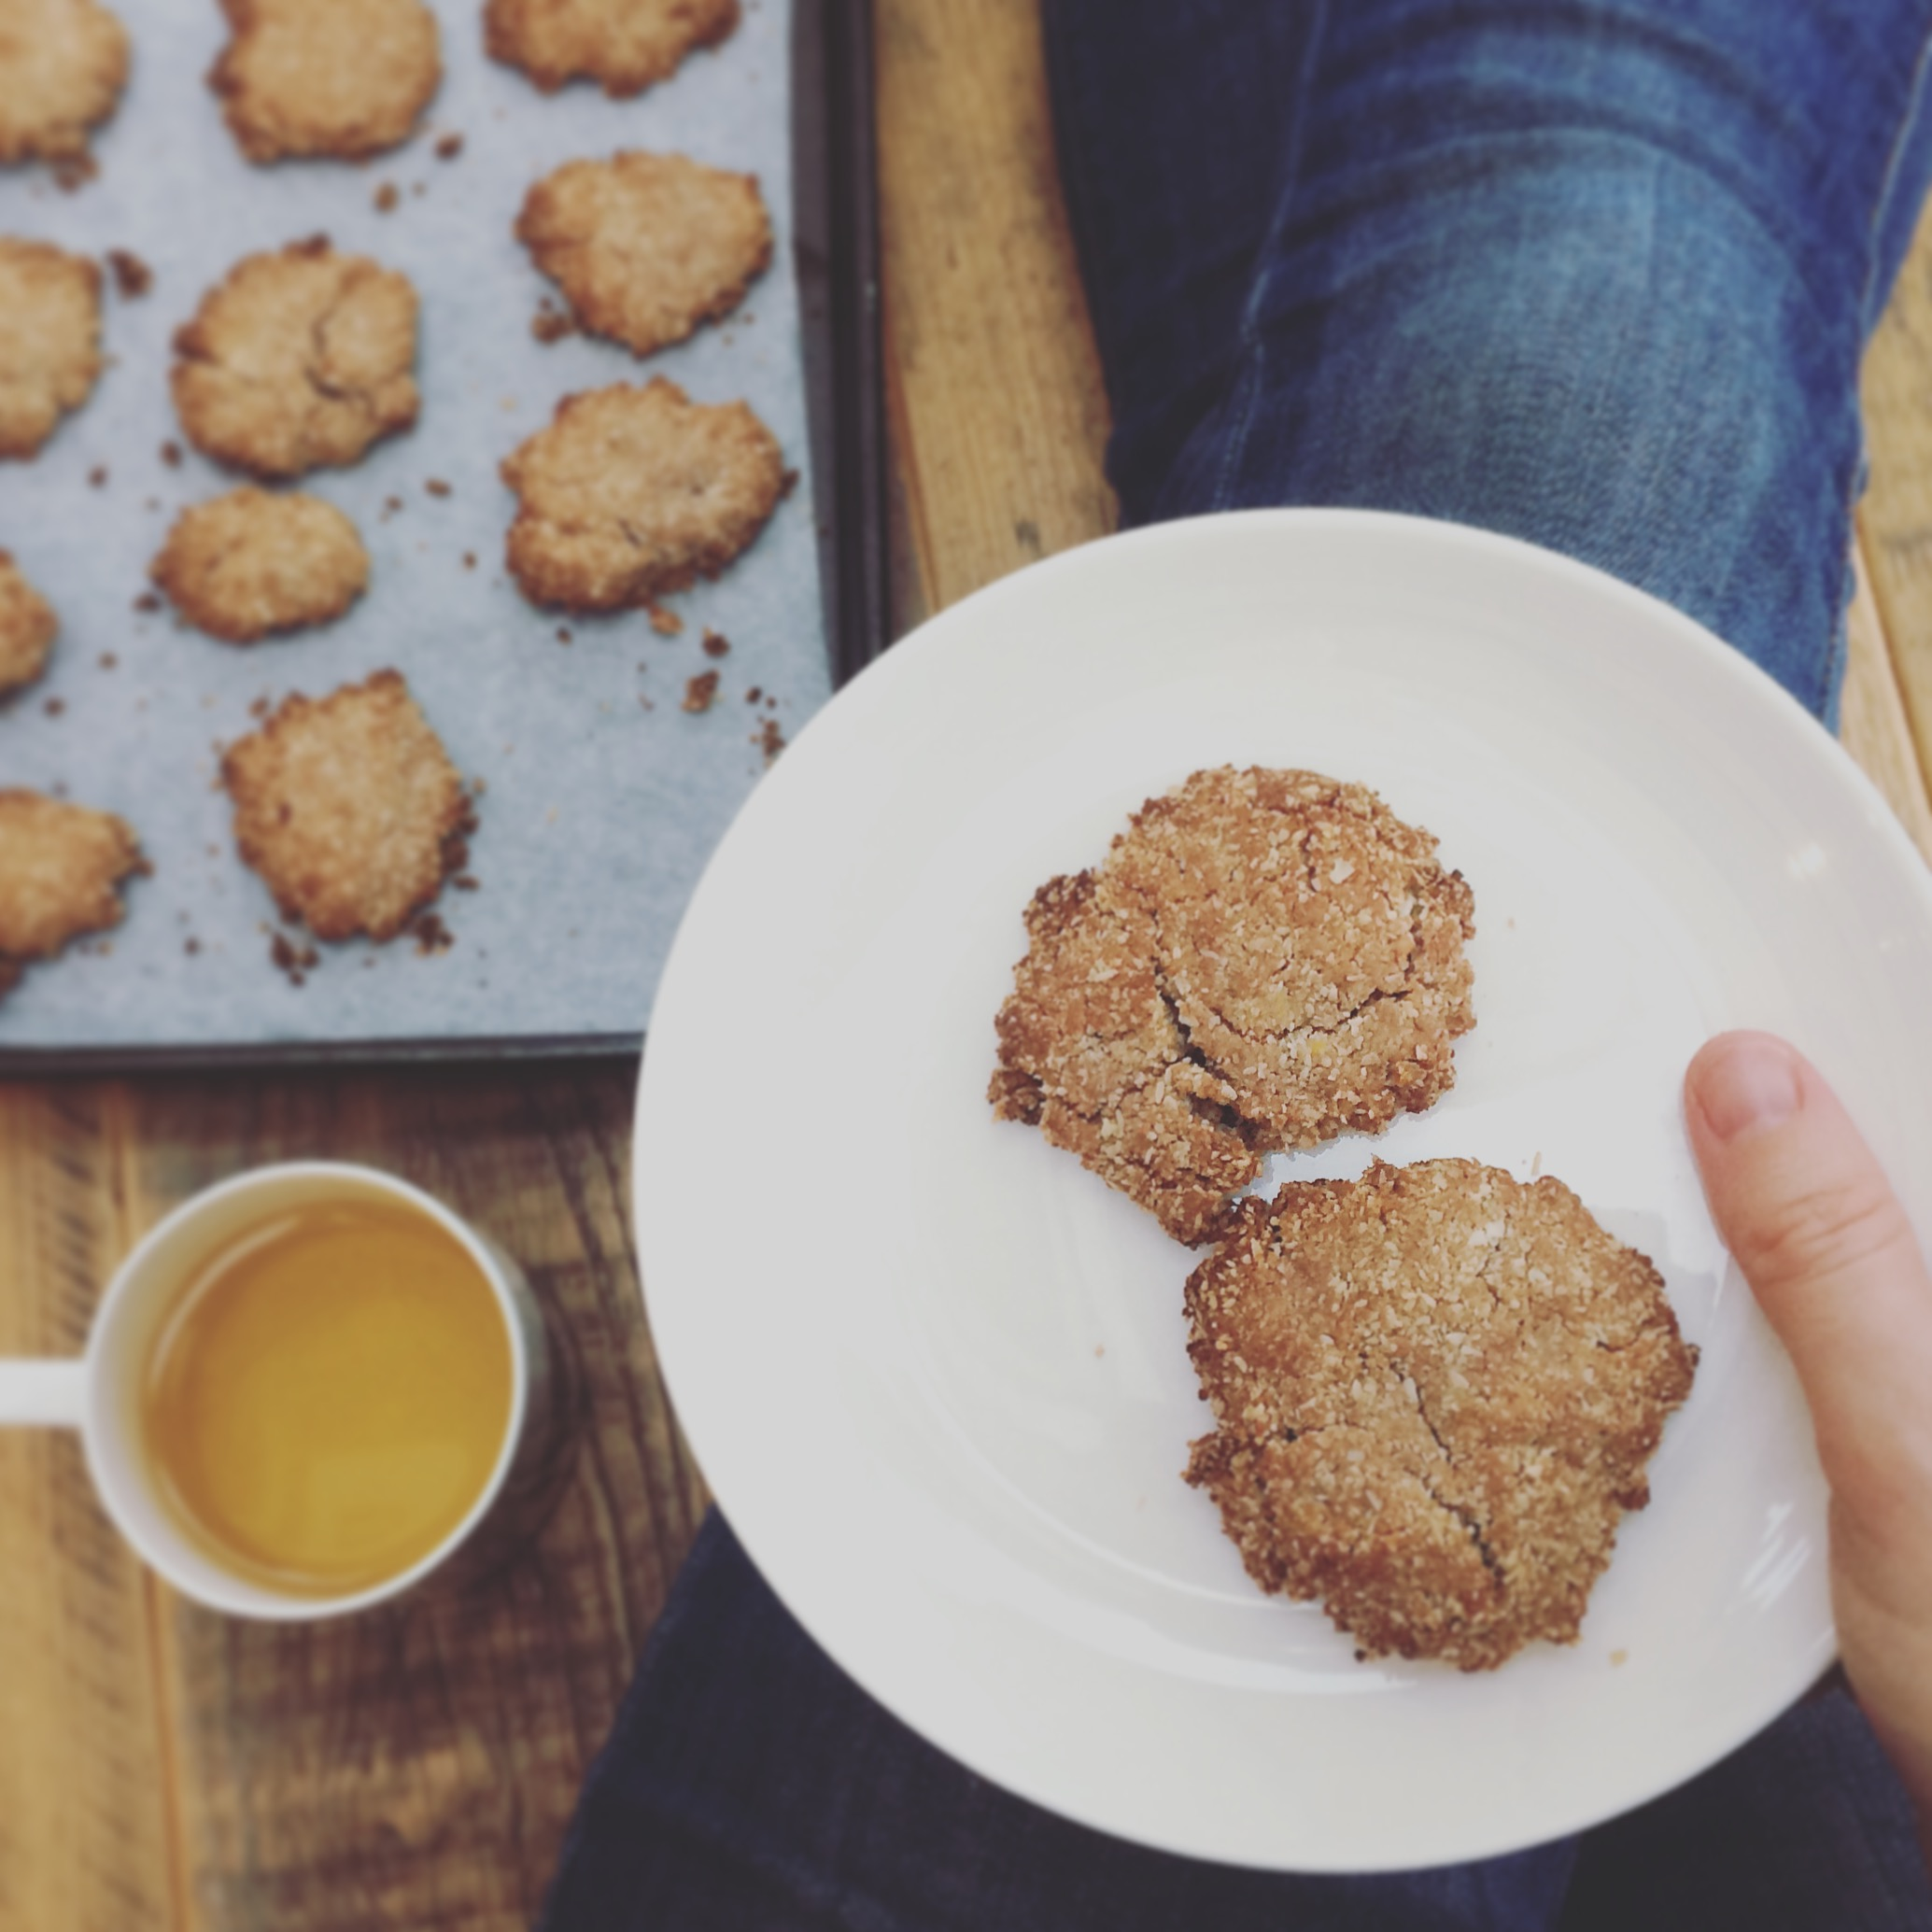 Gingernut biscuits